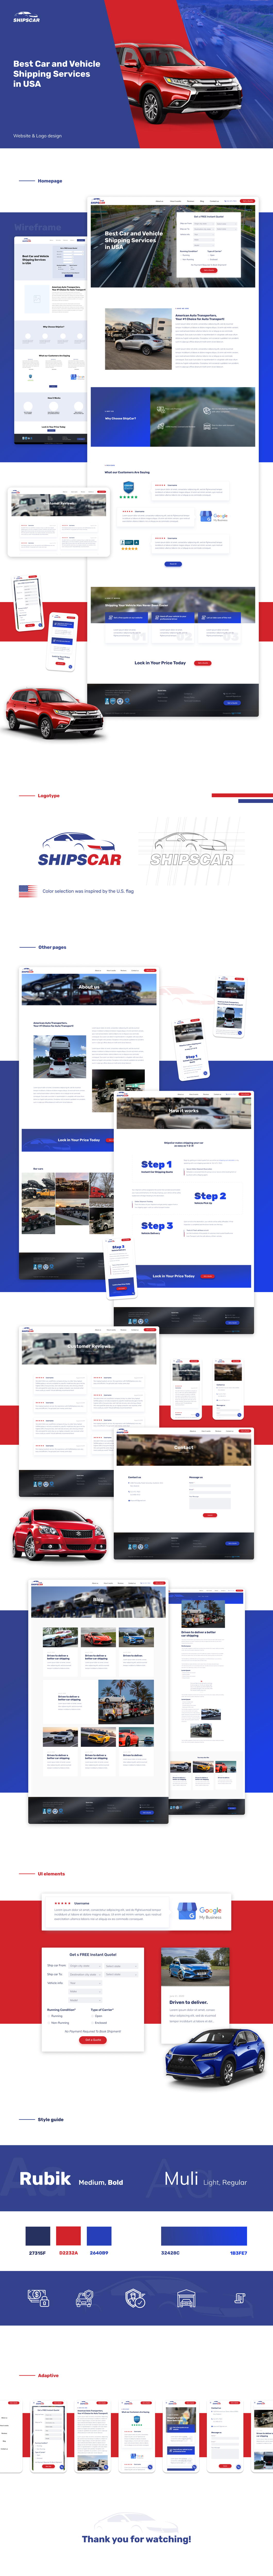 The presentation of F5 Studio shows their process of web design and logo design for a company that specializes in car transportation.